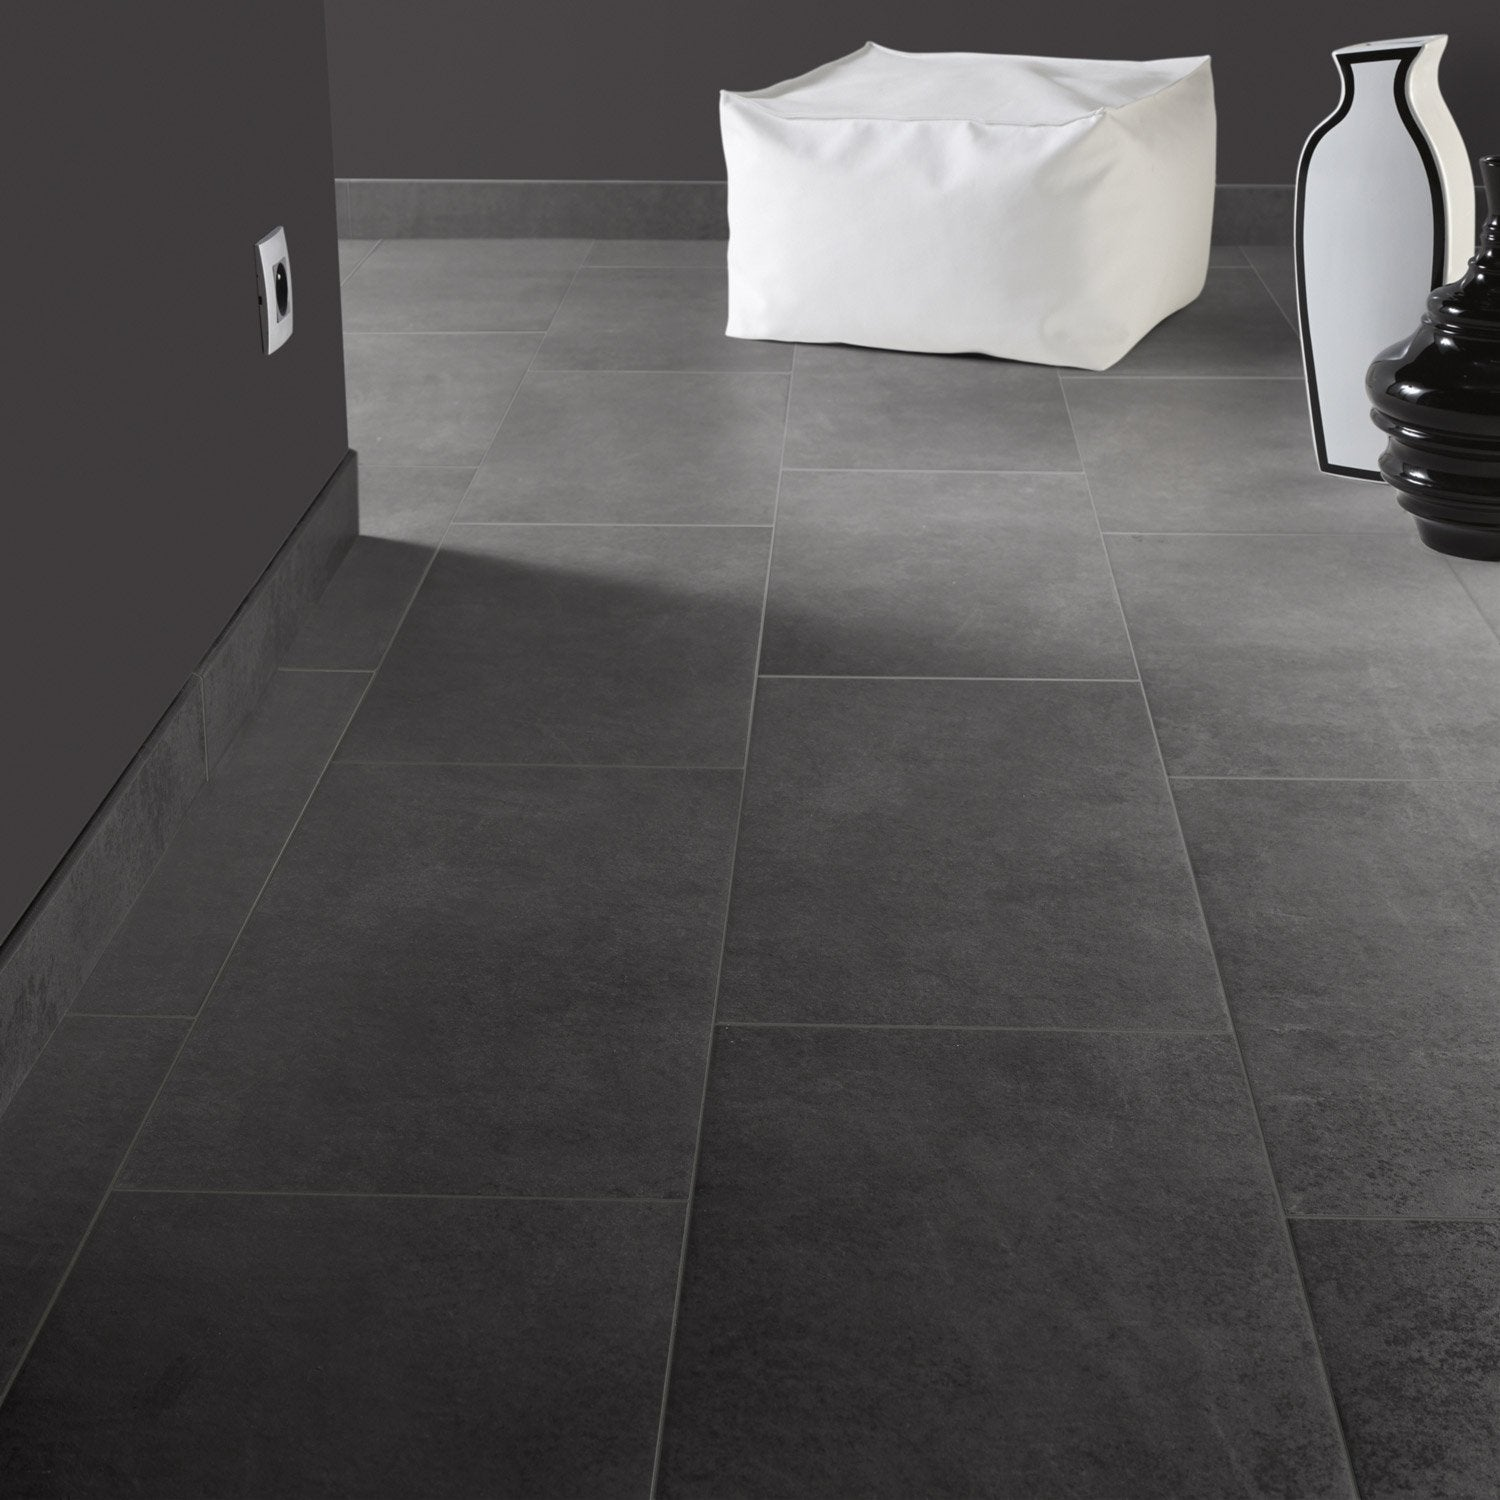 Carrelage sol et mur anthracite effet b ton lune x l for Carrelage smart tiles leroy merlin